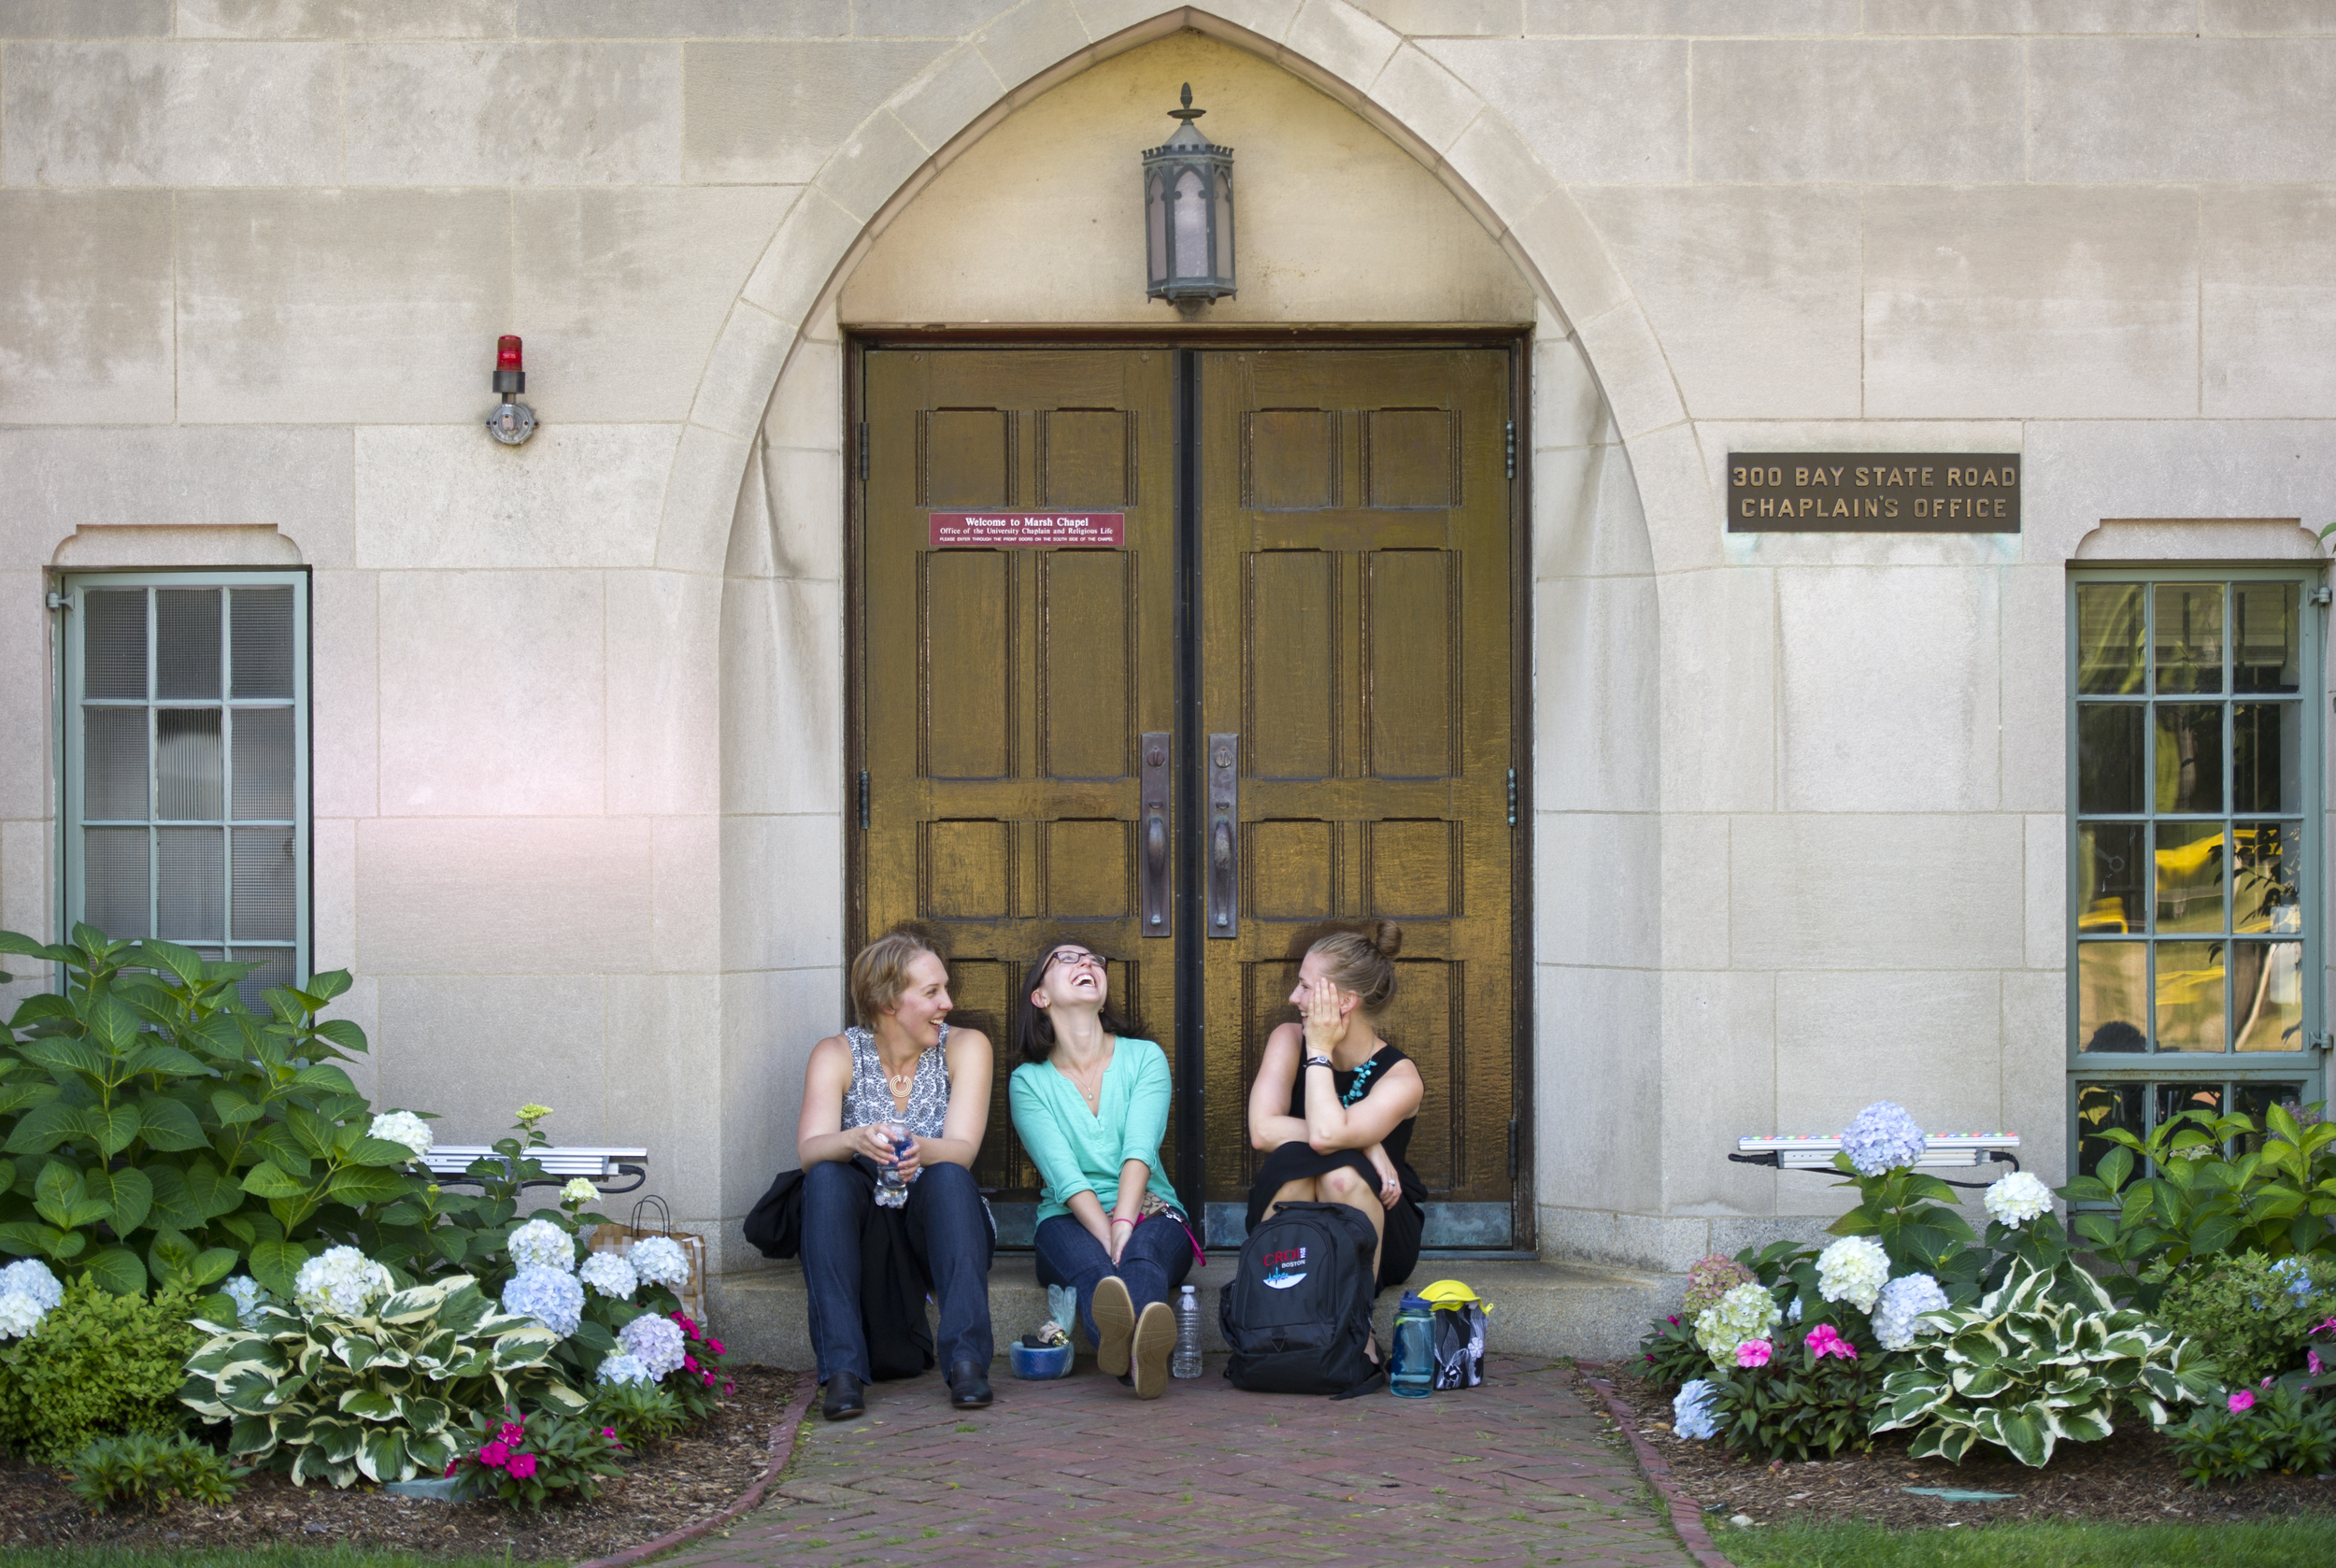 Debbie Hinck (LAW'17) from left, Yelena Kuznetsov (LAW'17), and Hillary Chadwick (LAW'17) get to to know each other during a break between classes September 4, 2014. The three had met briefly for the first time back in the spring during an orientation.Photo by Cydney Scott for Boston University Photography